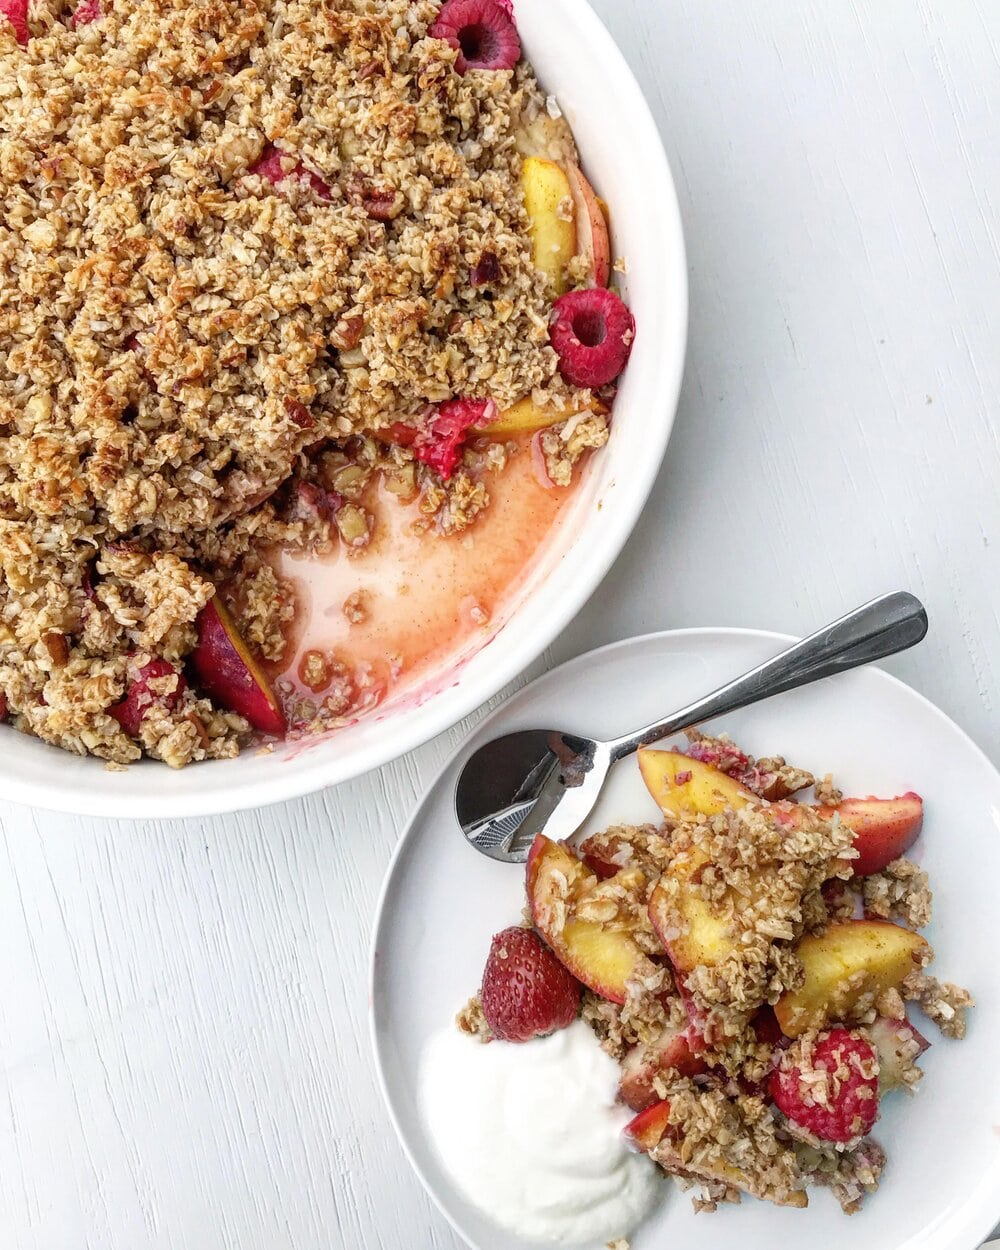 Summer berry and stone fruit crumble served on a white plate with yoghurt.